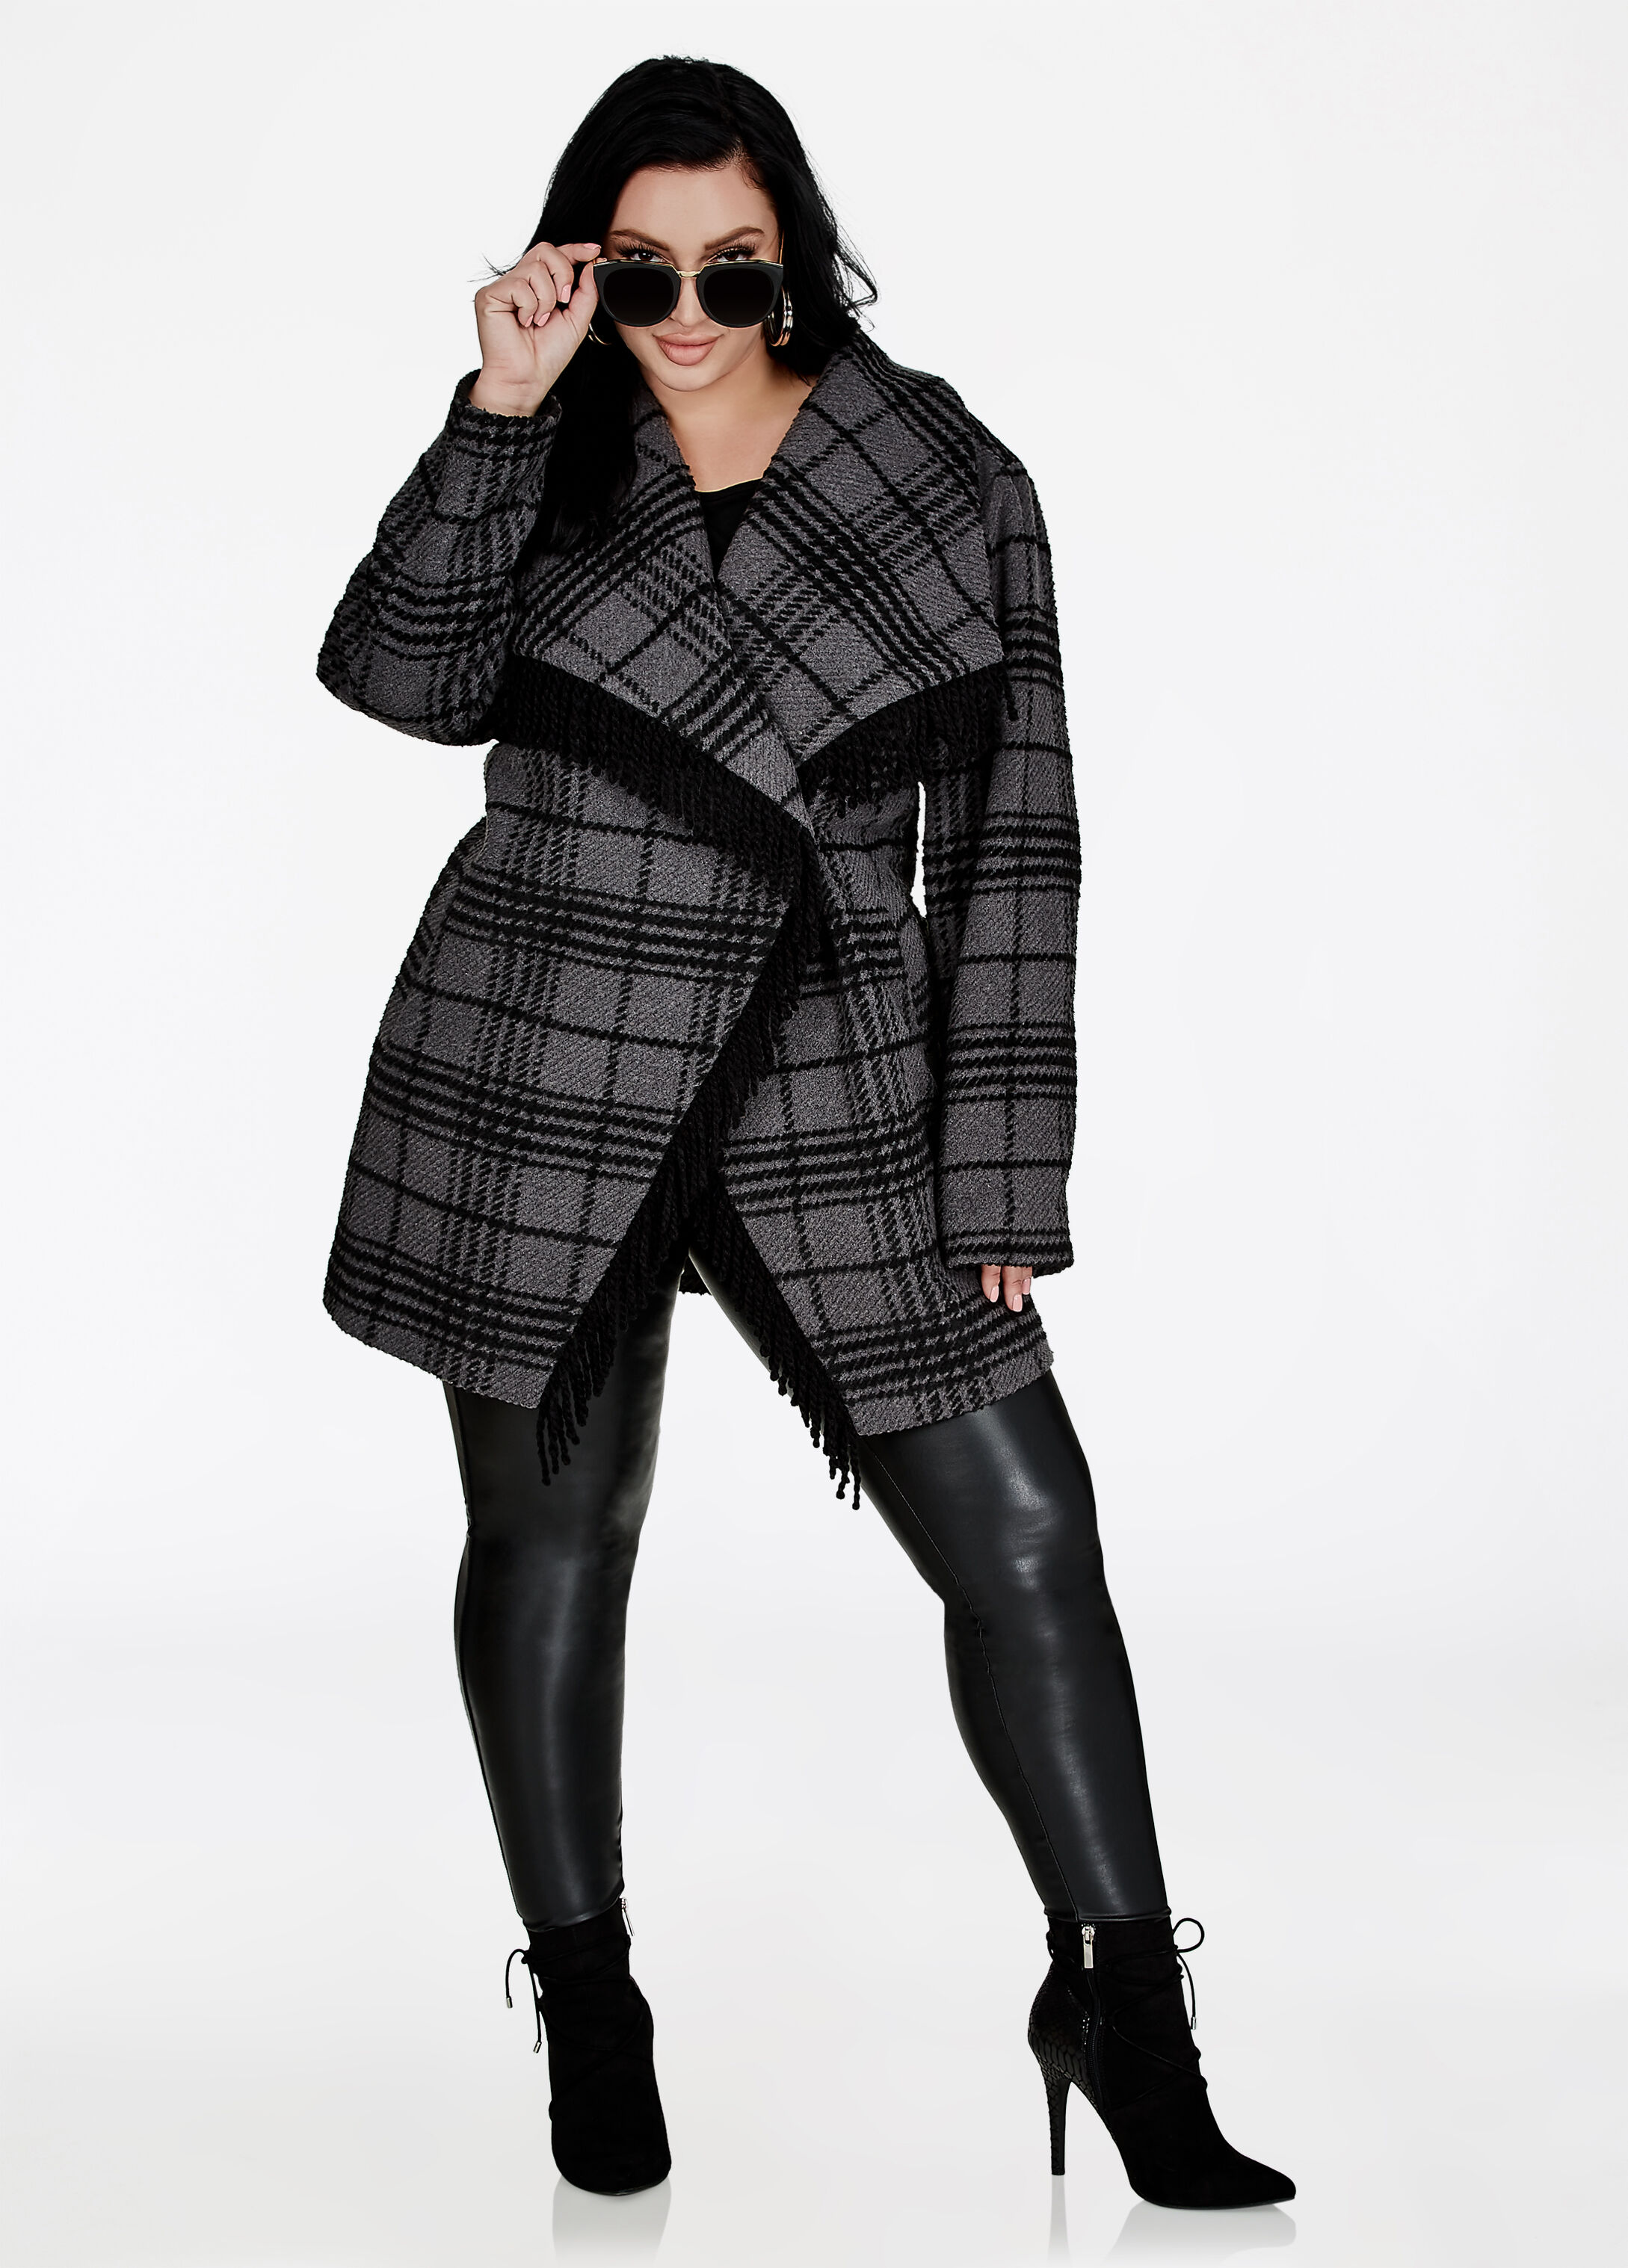 Plus Size Outfits - Colorblock Coat with Faux Leather Legging